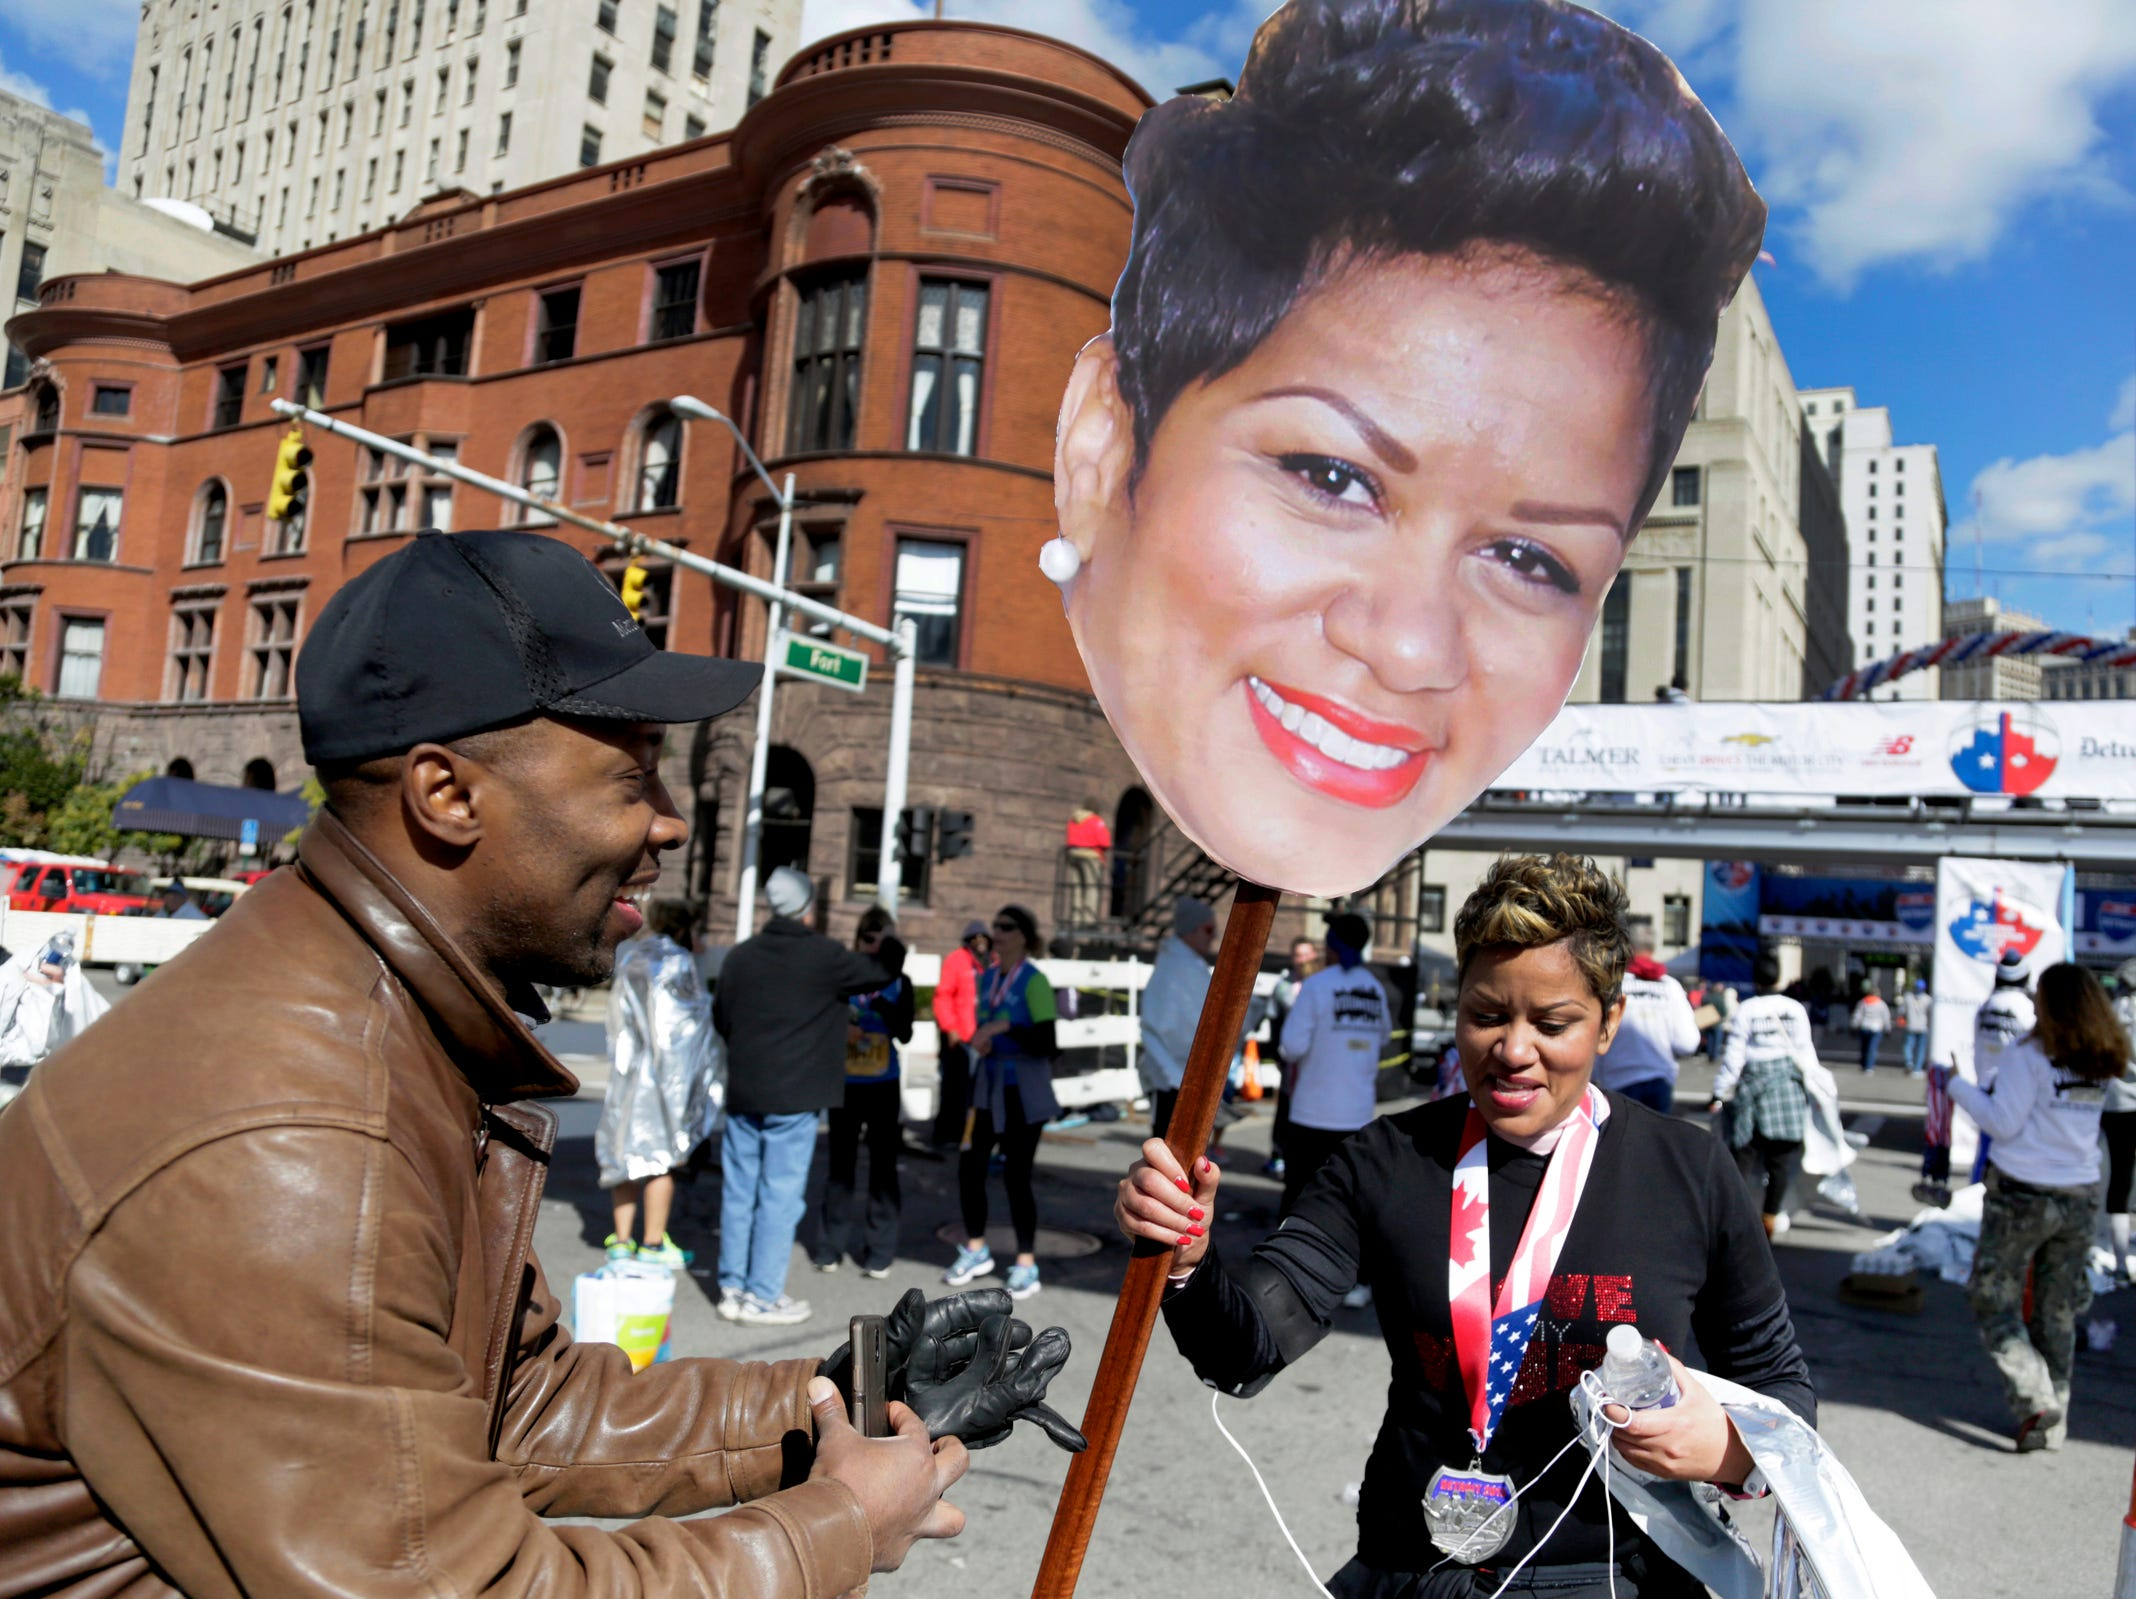 A proud Lance Maddox, 46, of Detroit, left, wanted to make sure his marathon running wife Tammy Turner-Maddox, 43, knew where to find him in the crowd so he made a big head cut-out of her for  the 38th Detroit Free Press/Talmer Bank Marathon Sunday Oct. 18, 2015.